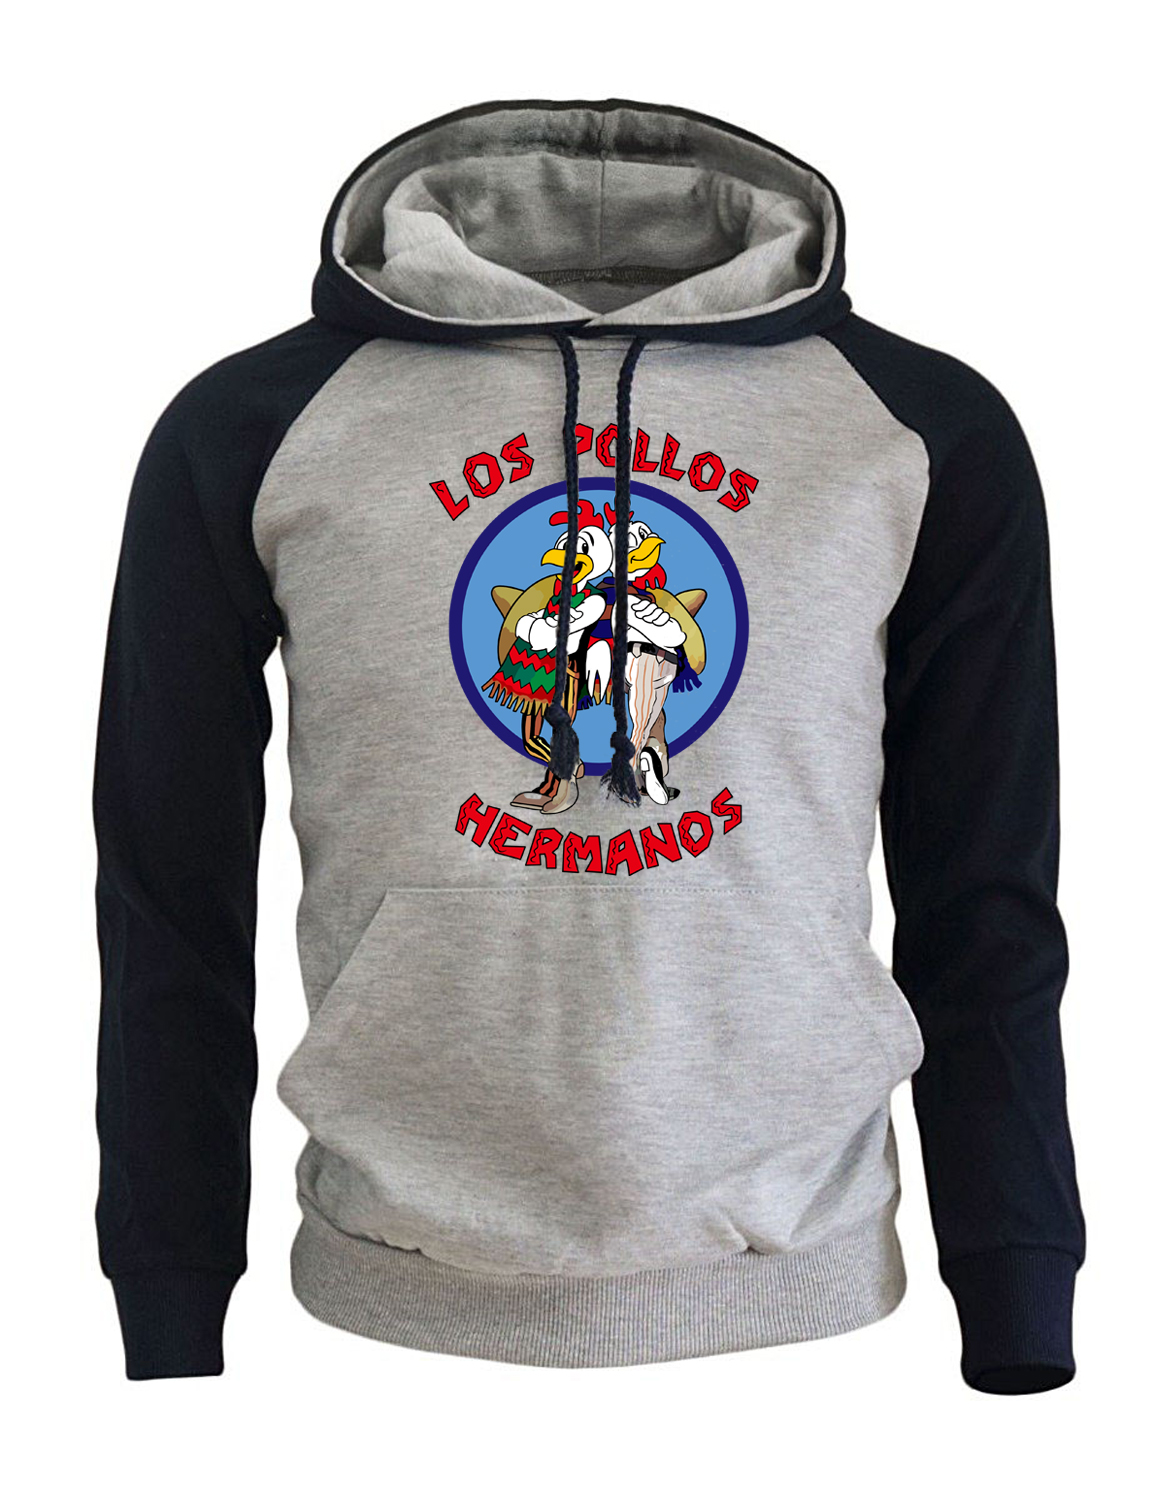 Men's Sportswear Harajuku Hoody 2018 New Arrival Sweatshirt For Men Print LOS POLLOS Hermanos Breaking Bad Hip Hop Hoodies Men